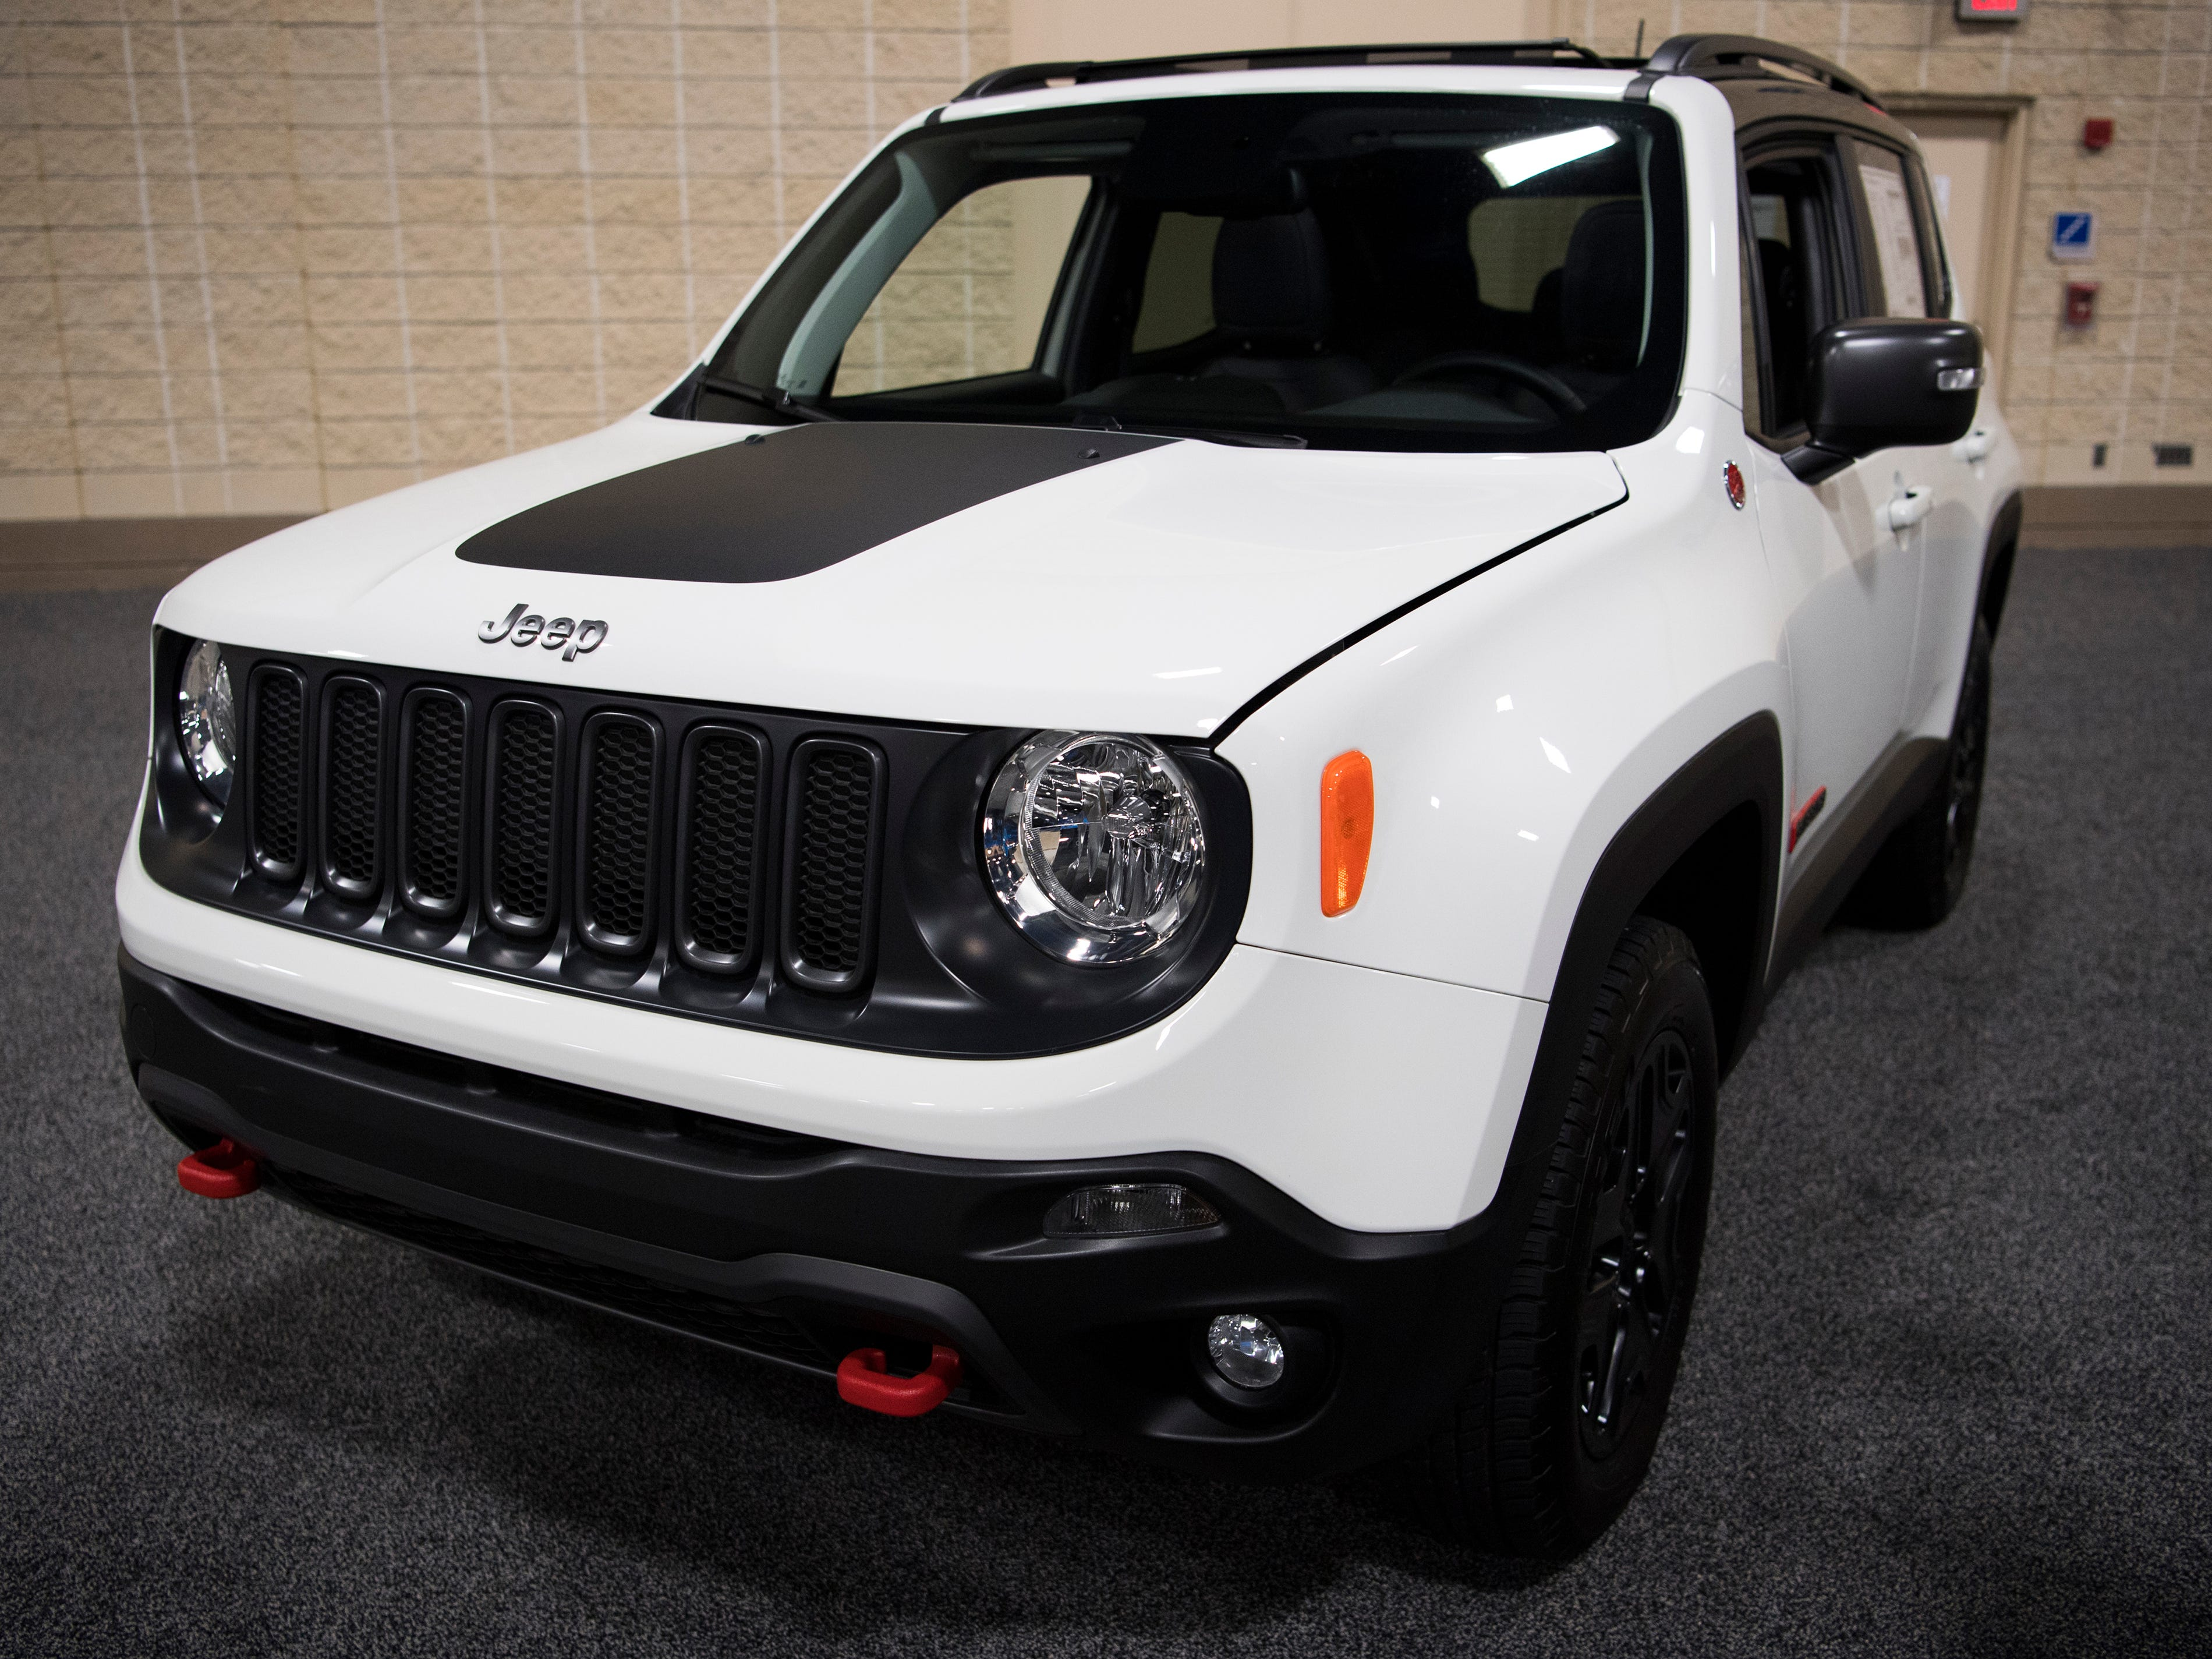 The Jeep Renegade Trailhawk 4x4 at the Knox News Auto Show held at the Knoxville Convention Center on Friday, February 22, 2019.